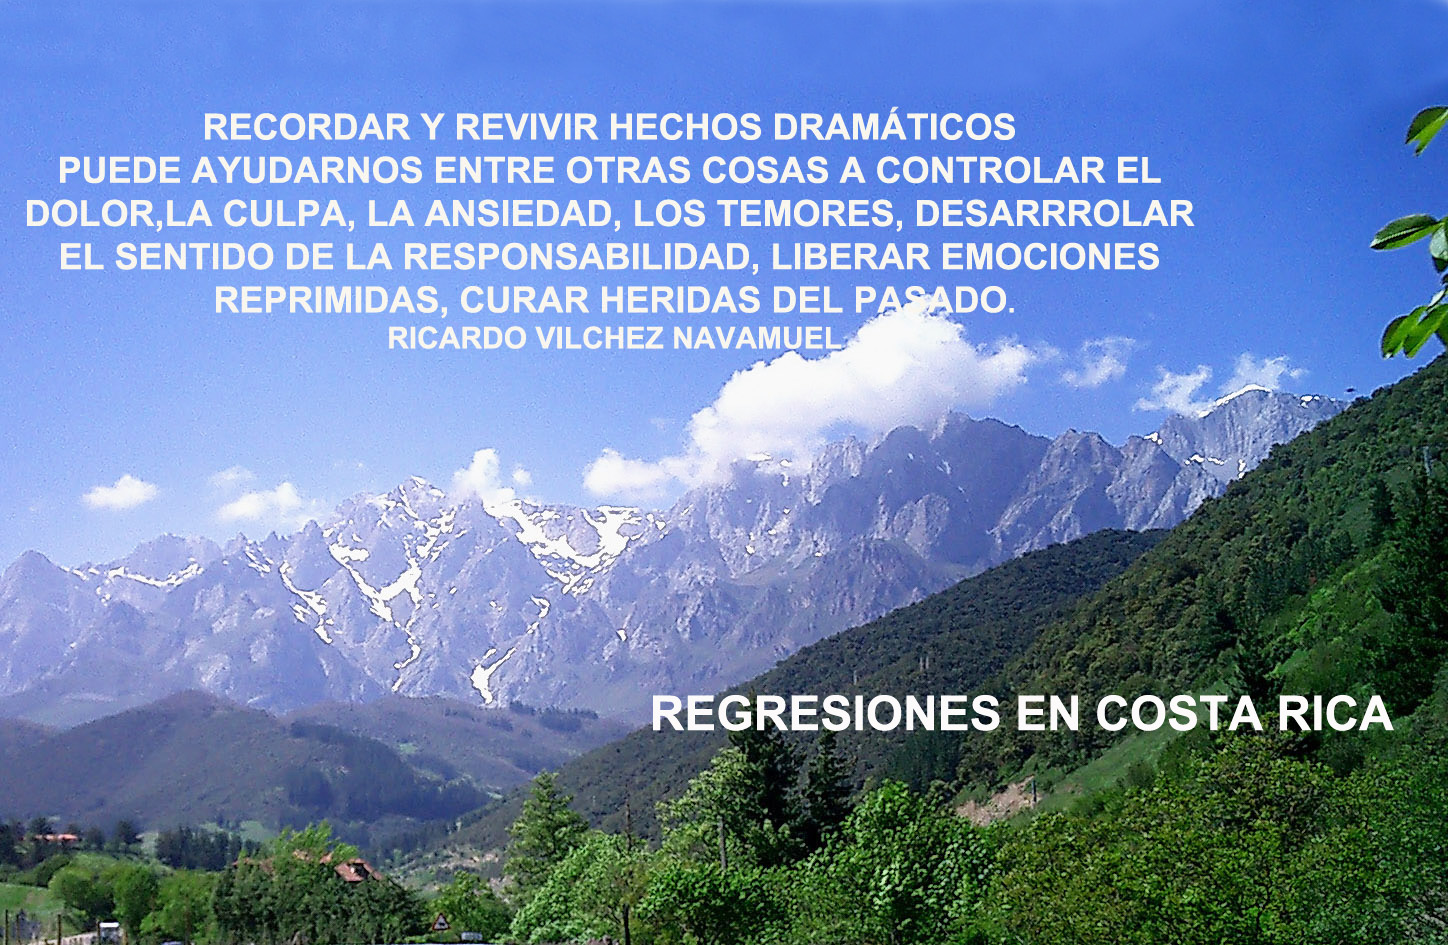 Regresiones en Costa Rica